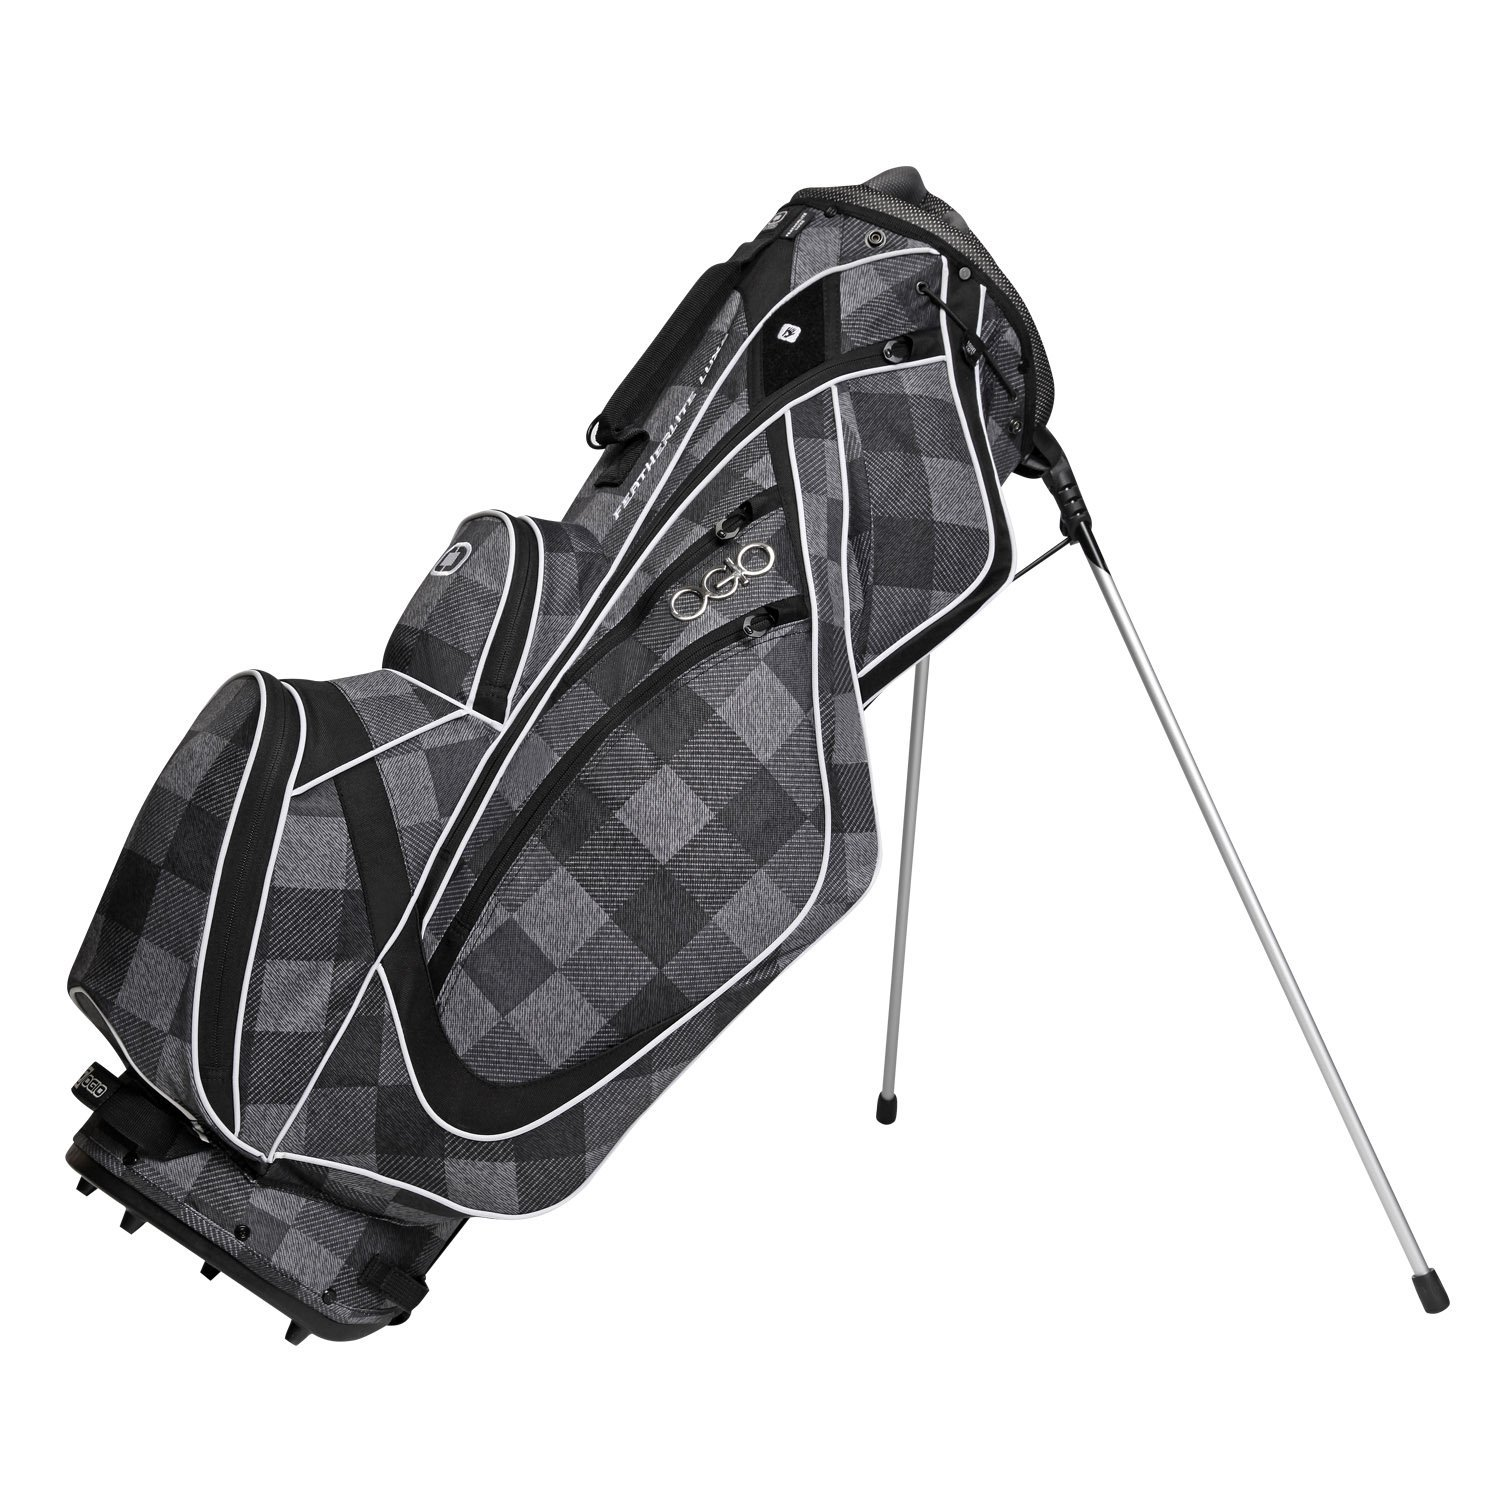 Ogio Womens Featherlite Luxe Golf Stand Bags